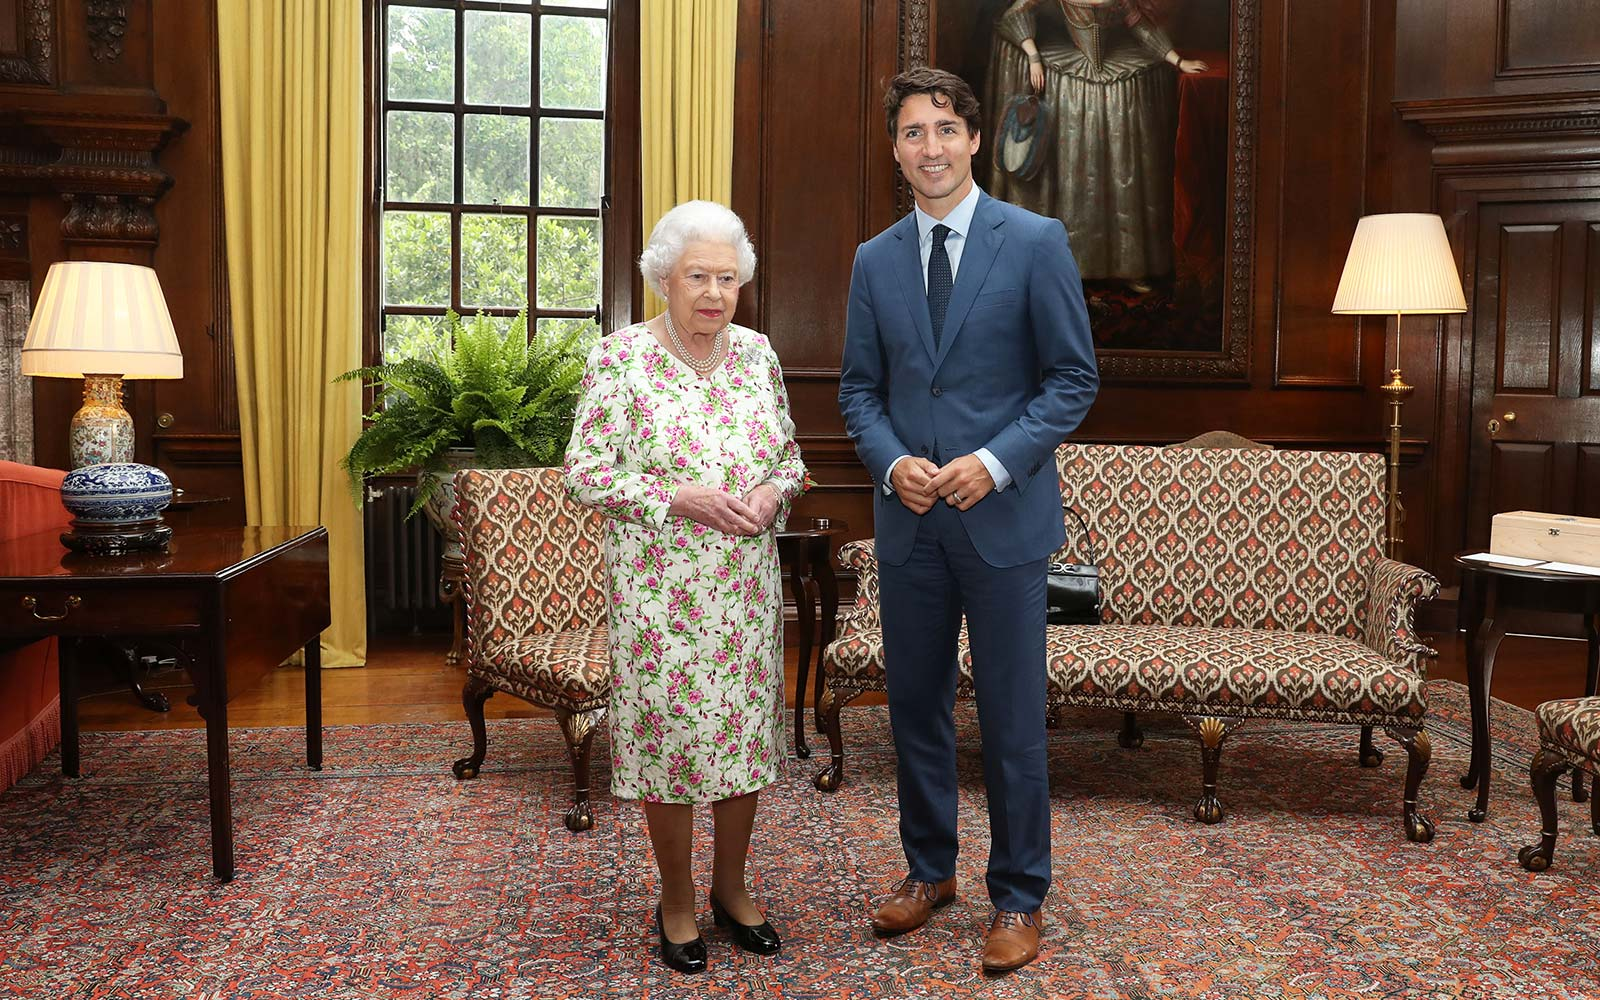 Queen Elizabeth II meets with Canadian Prime Minister Justin Trudeau during an audience at the Palace of Holyroodhouse in Edinburgh, Scotland